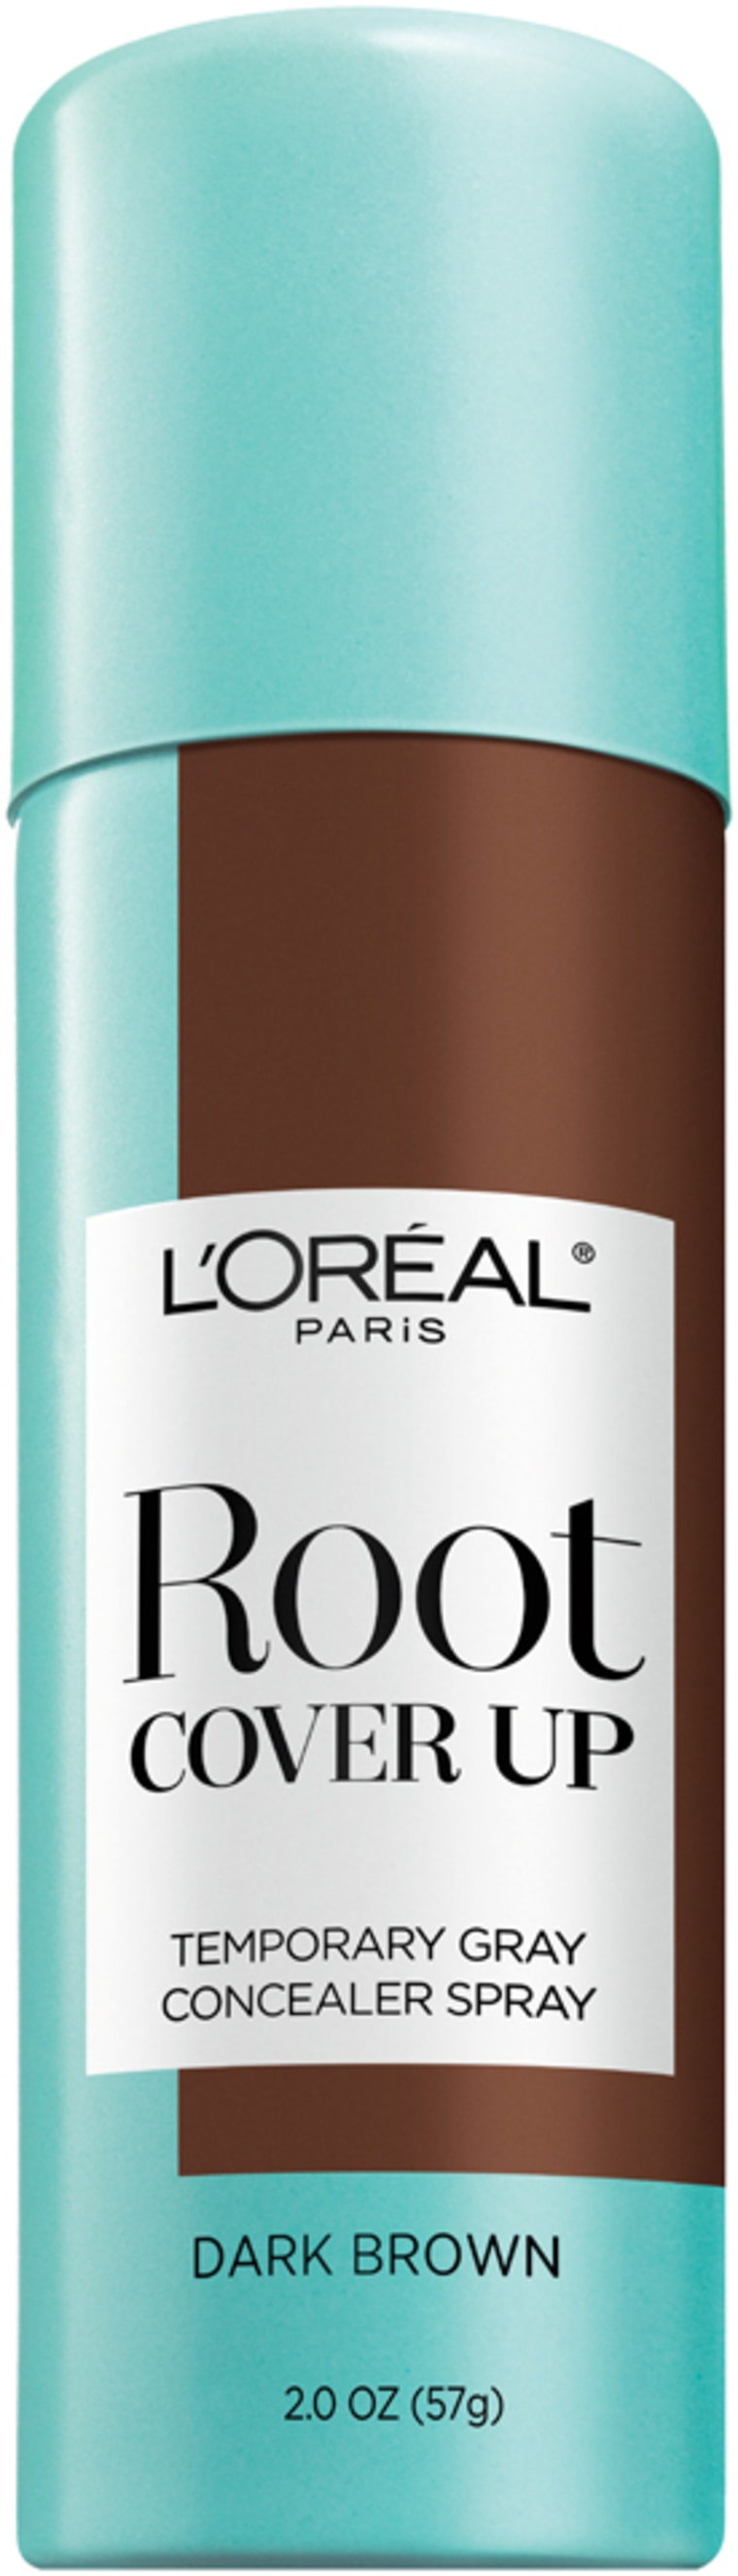 Drugstore hair products